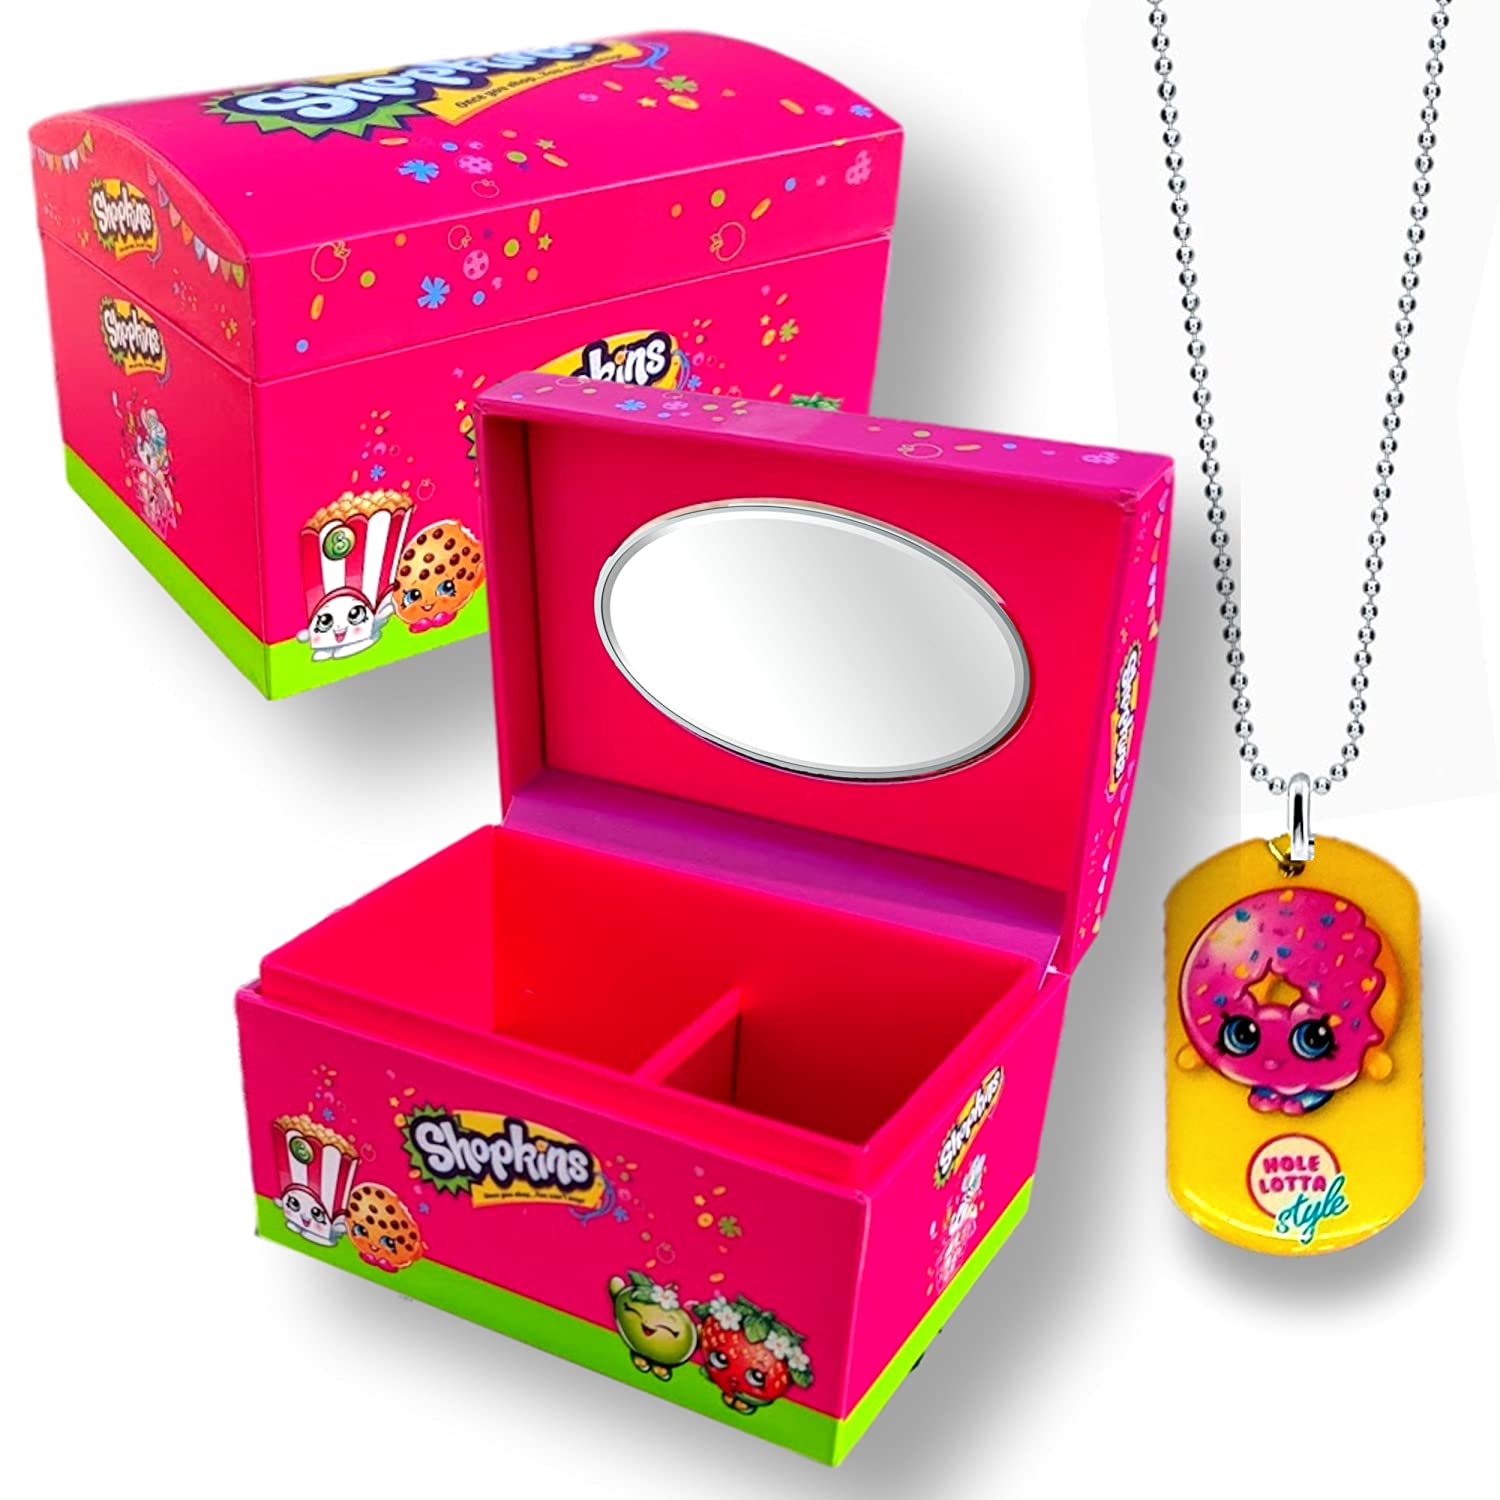 Amazon 595 Shopkins Mini Jewelry Box and Shopkins Necklace qpanion